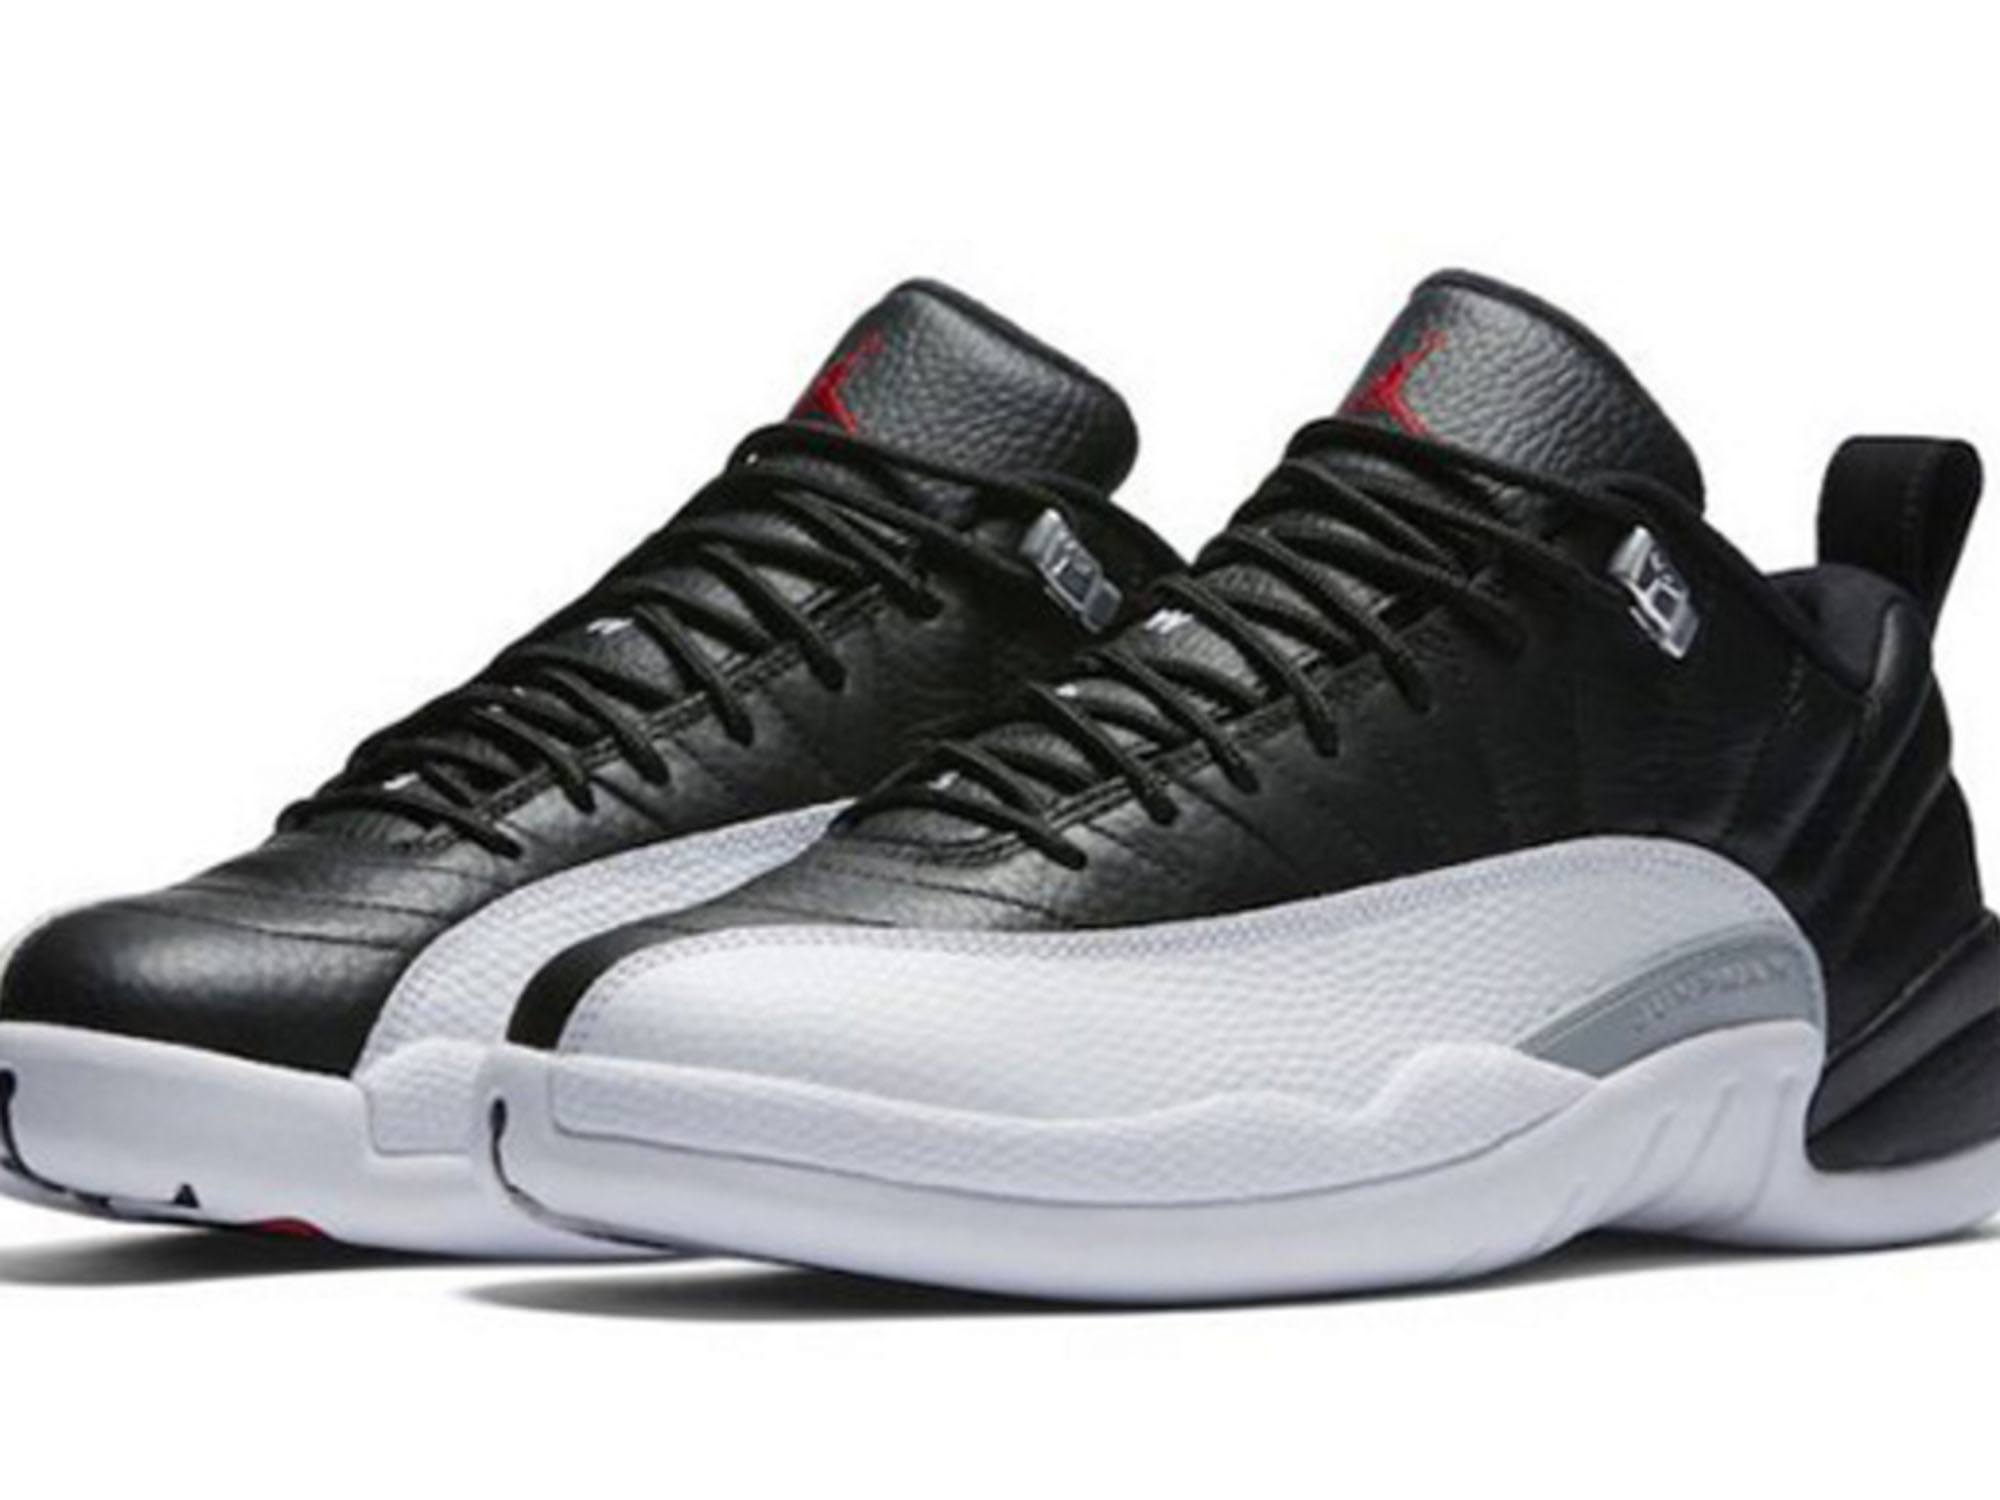 be0c2e68518 Jordan release dates 2017 full list  Launch days